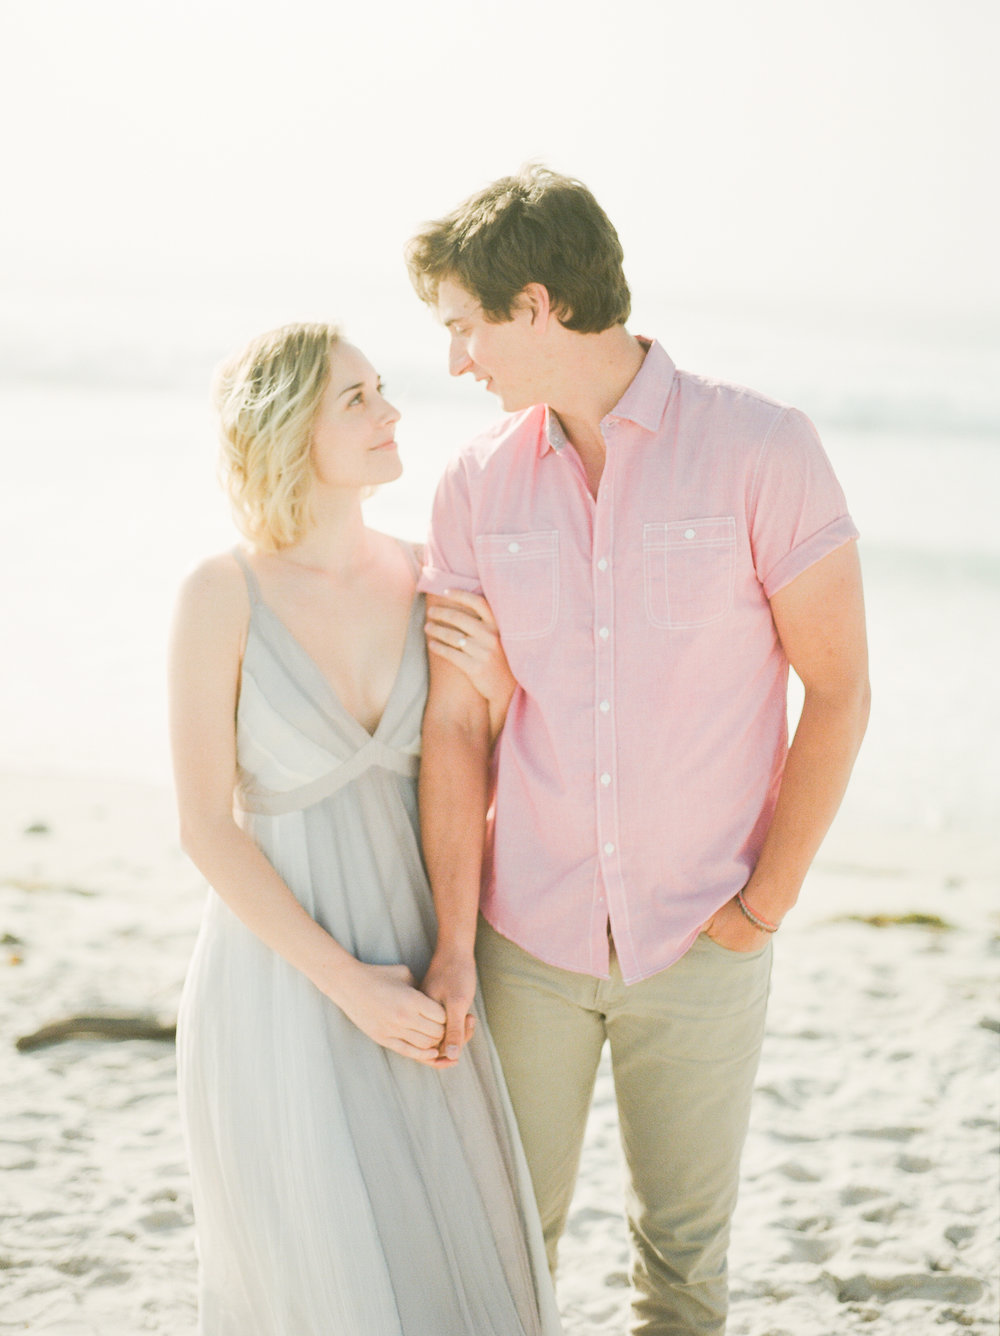 kennedy-clayton-engagement-film-21.jpg